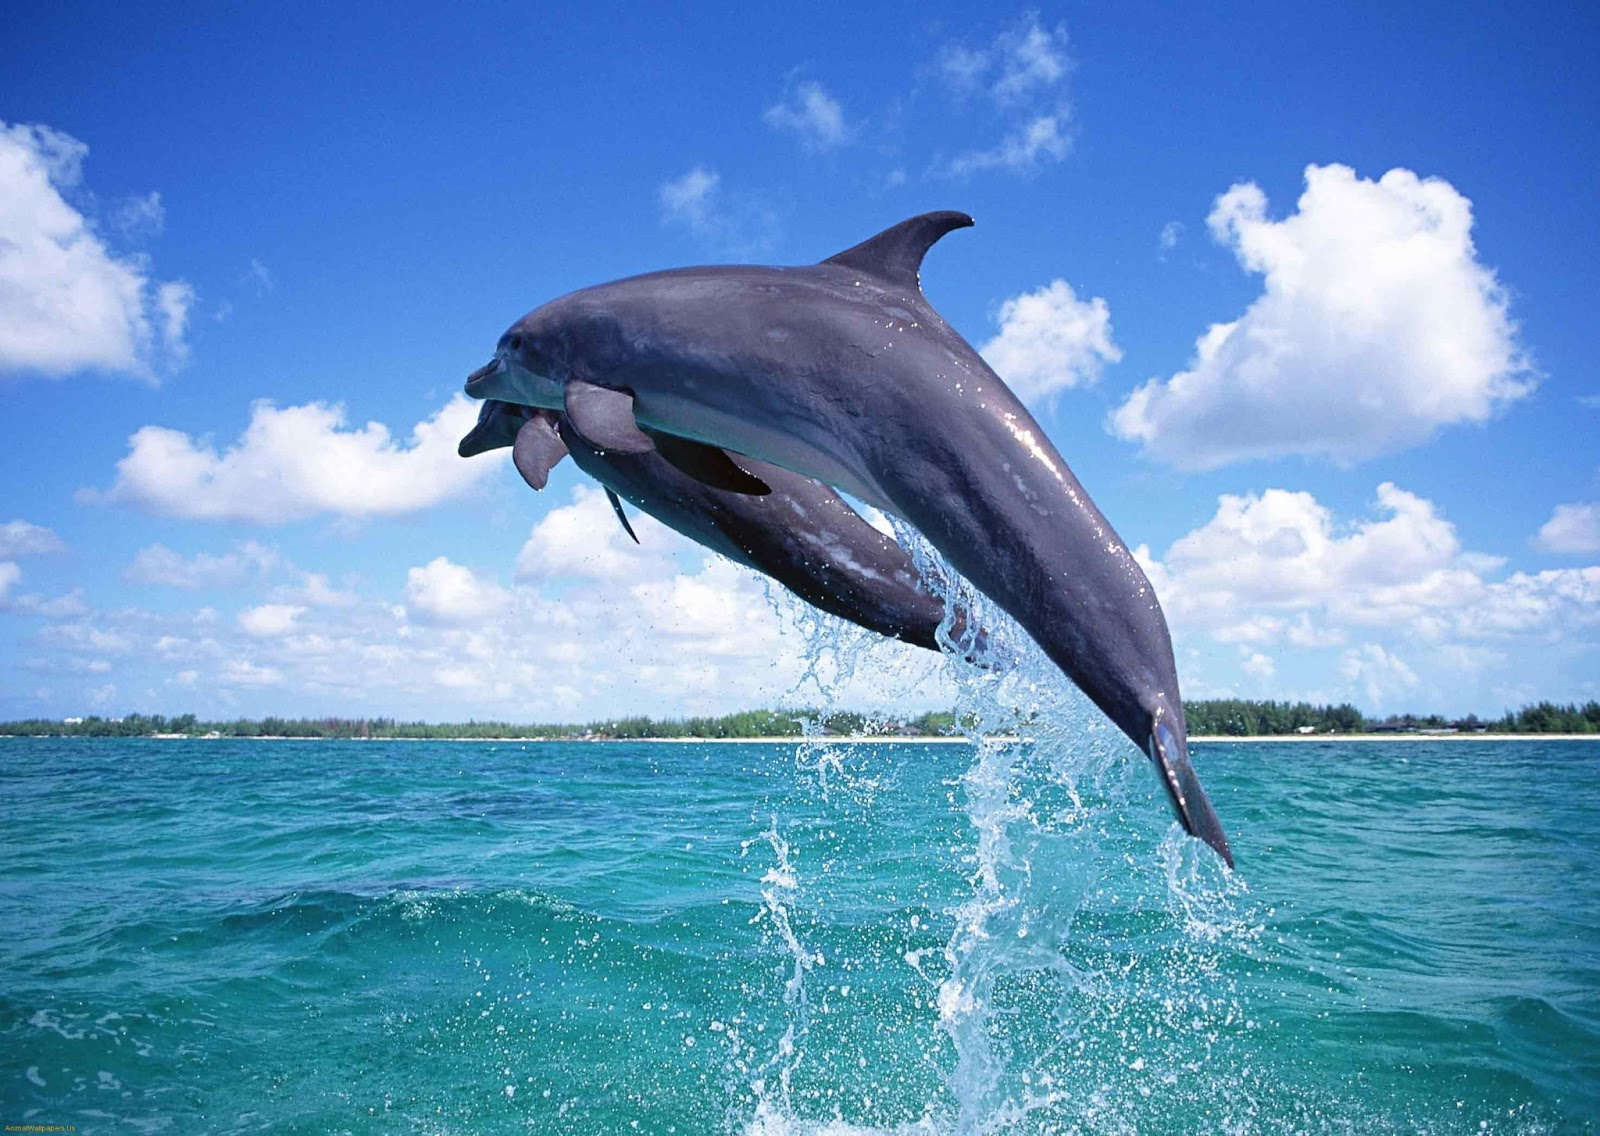 http://1.bp.blogspot.com/-y3UqqxAtuXE/UU0ZEoHCw8I/AAAAAAAABXM/7BfKGO1meJk/s1600/cute-dolphin-fish-wallpapers-1494-hd-wallpapers.jpg